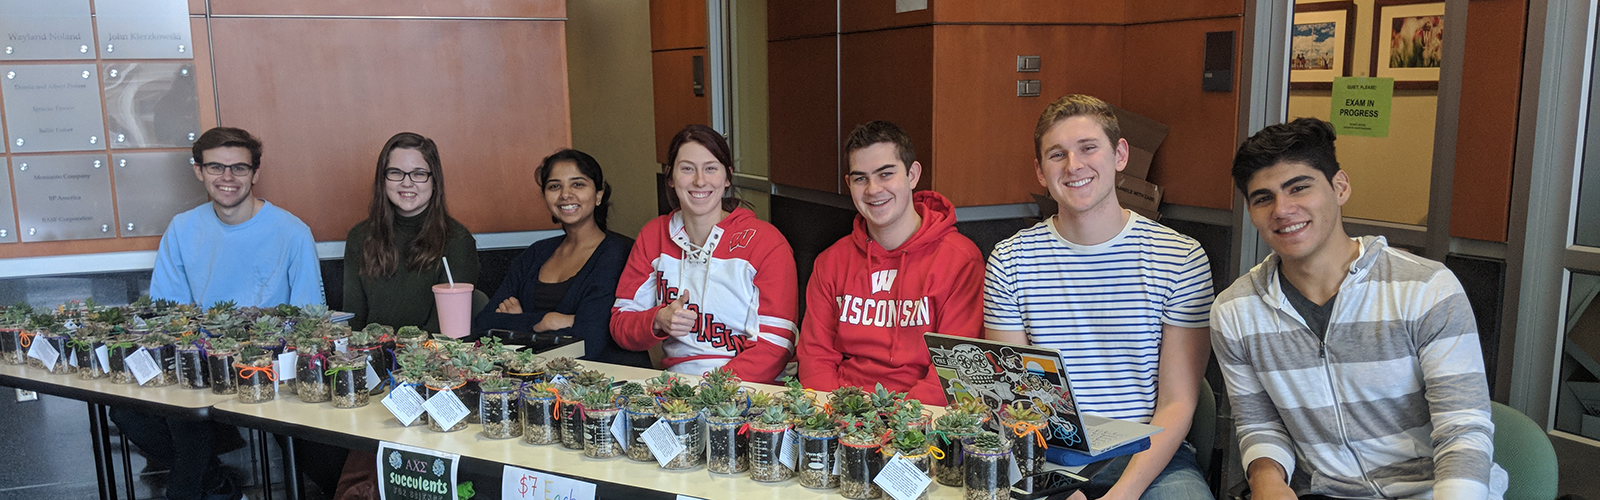 alpha chi sigma members with succulents for science